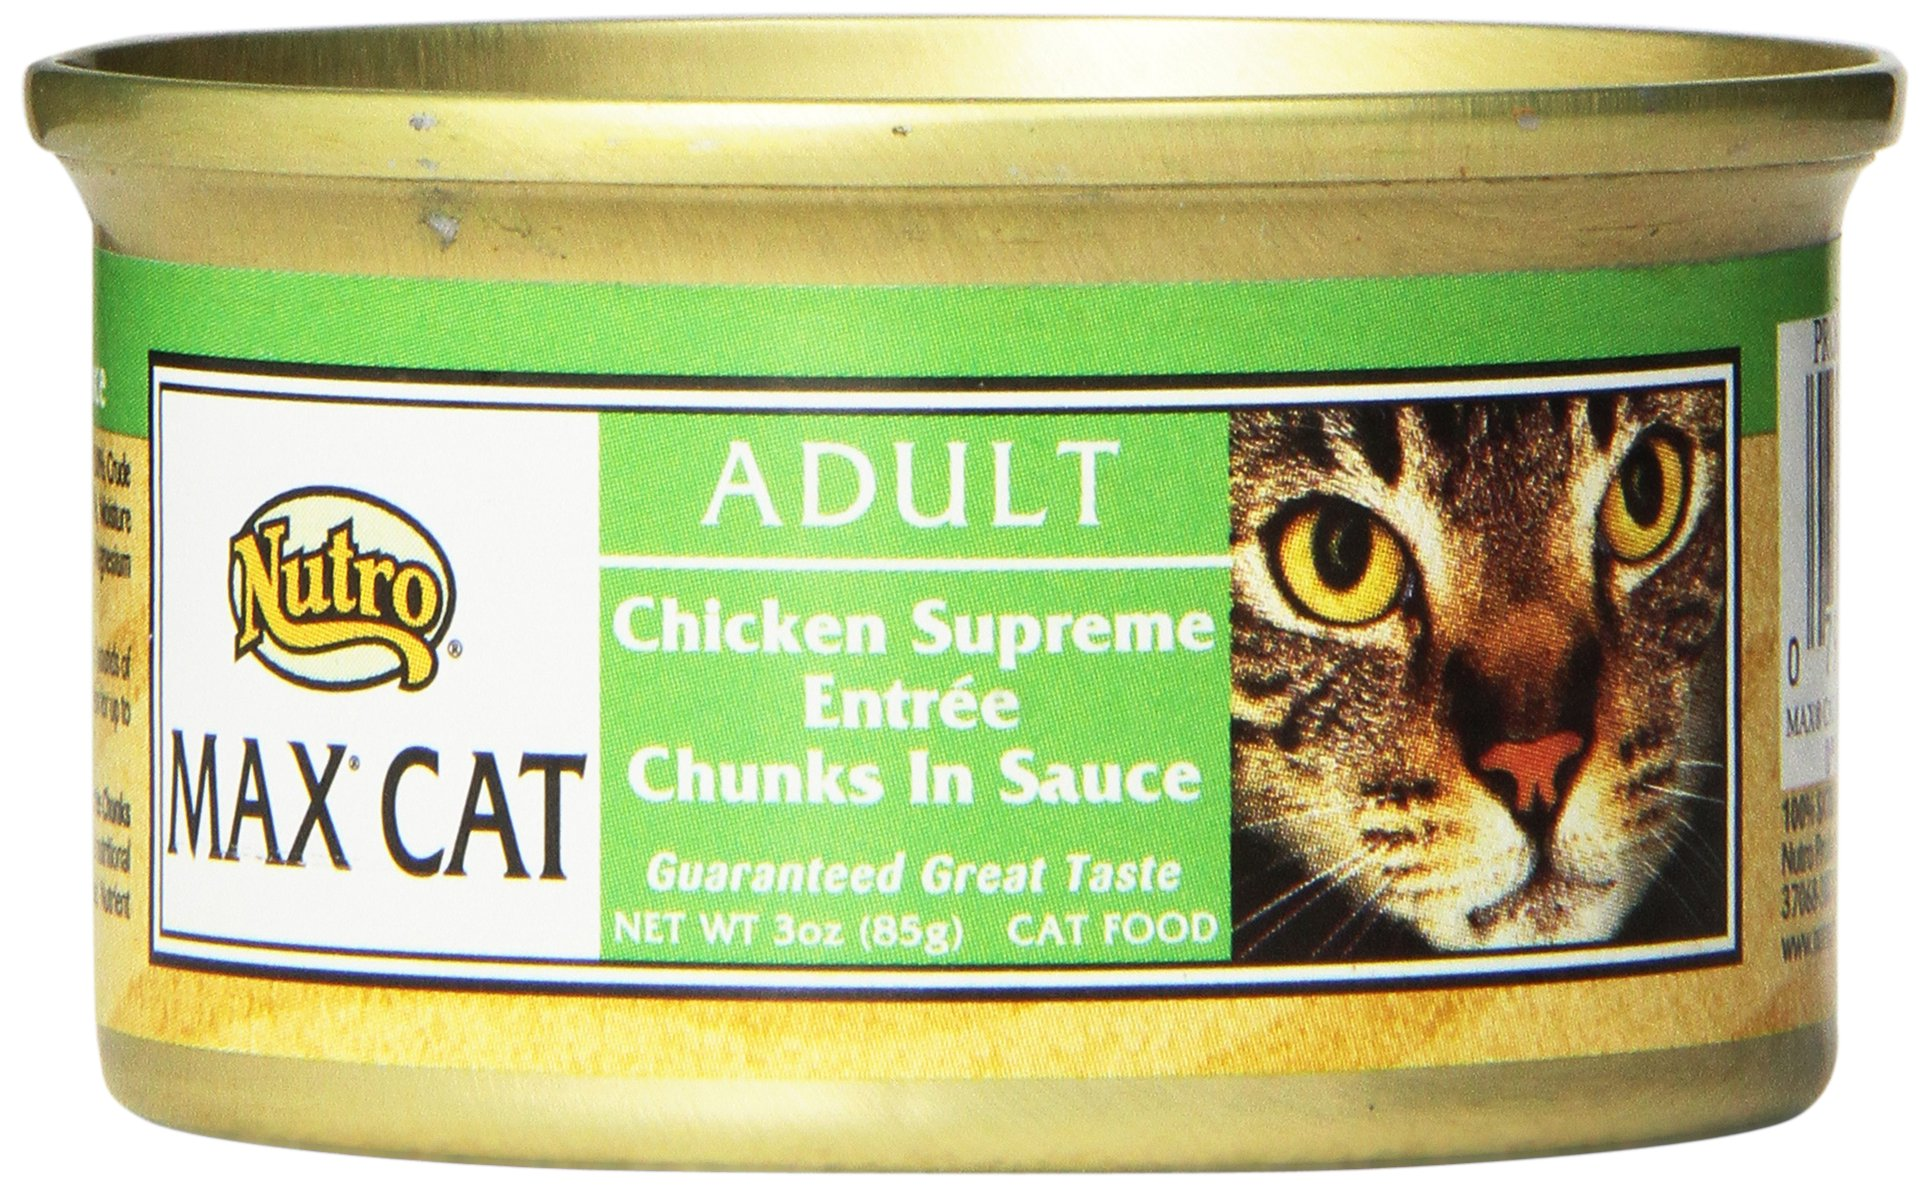 Nutro Max Cat Adult Chicken Supreme Entrée Chunks In Sauce Canned Cat Food,3Oz-(Pack Of 24) by Nutro